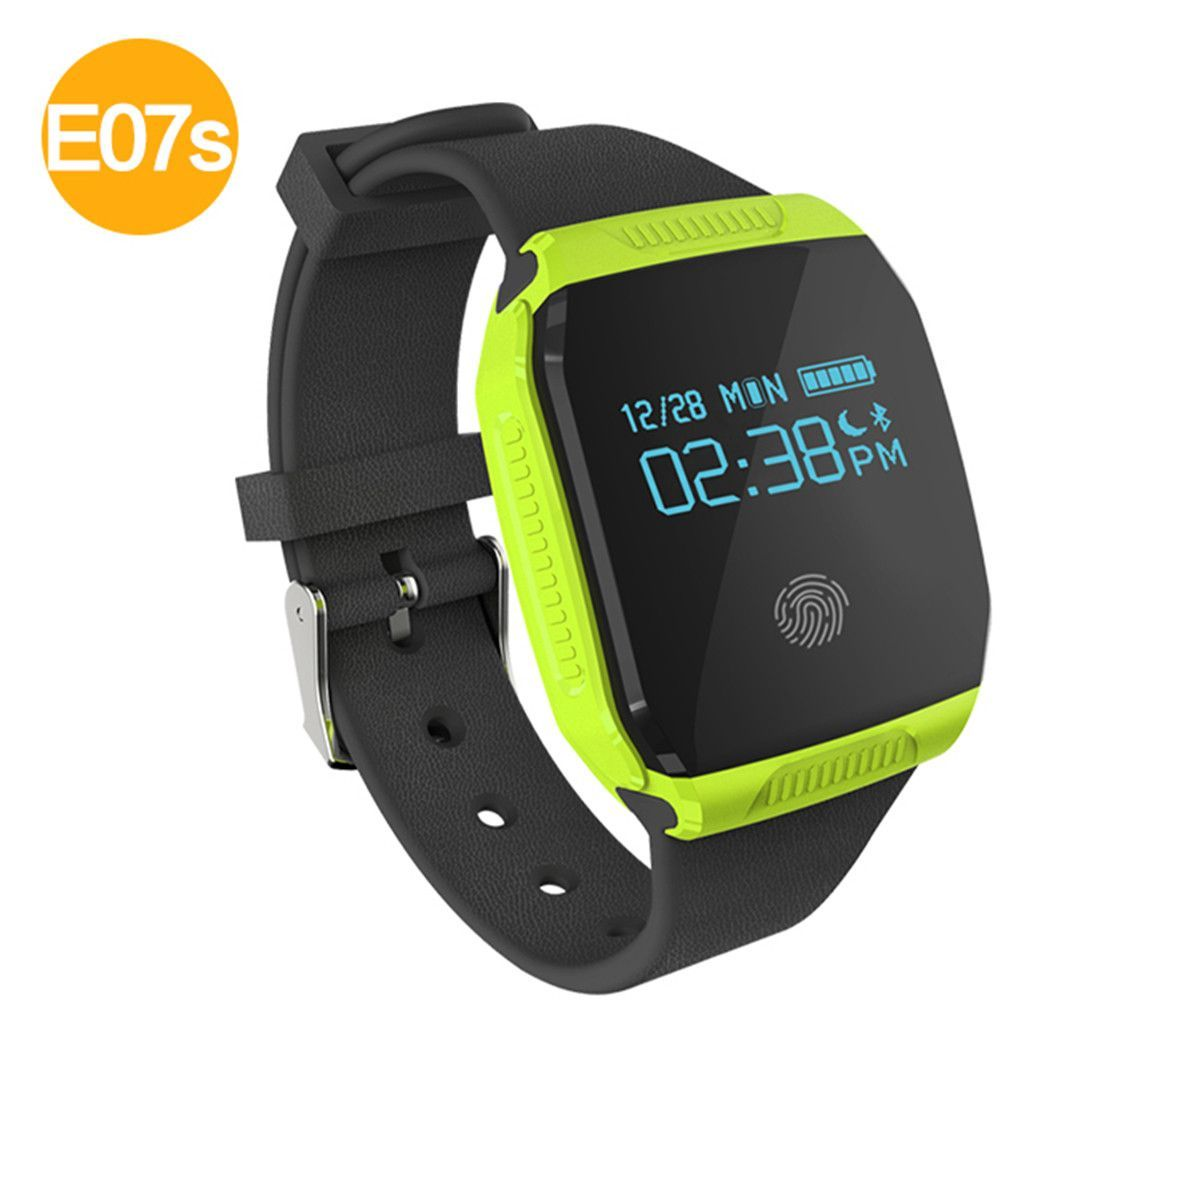 trackers tracking fitness finest the best overall watches out now tracker